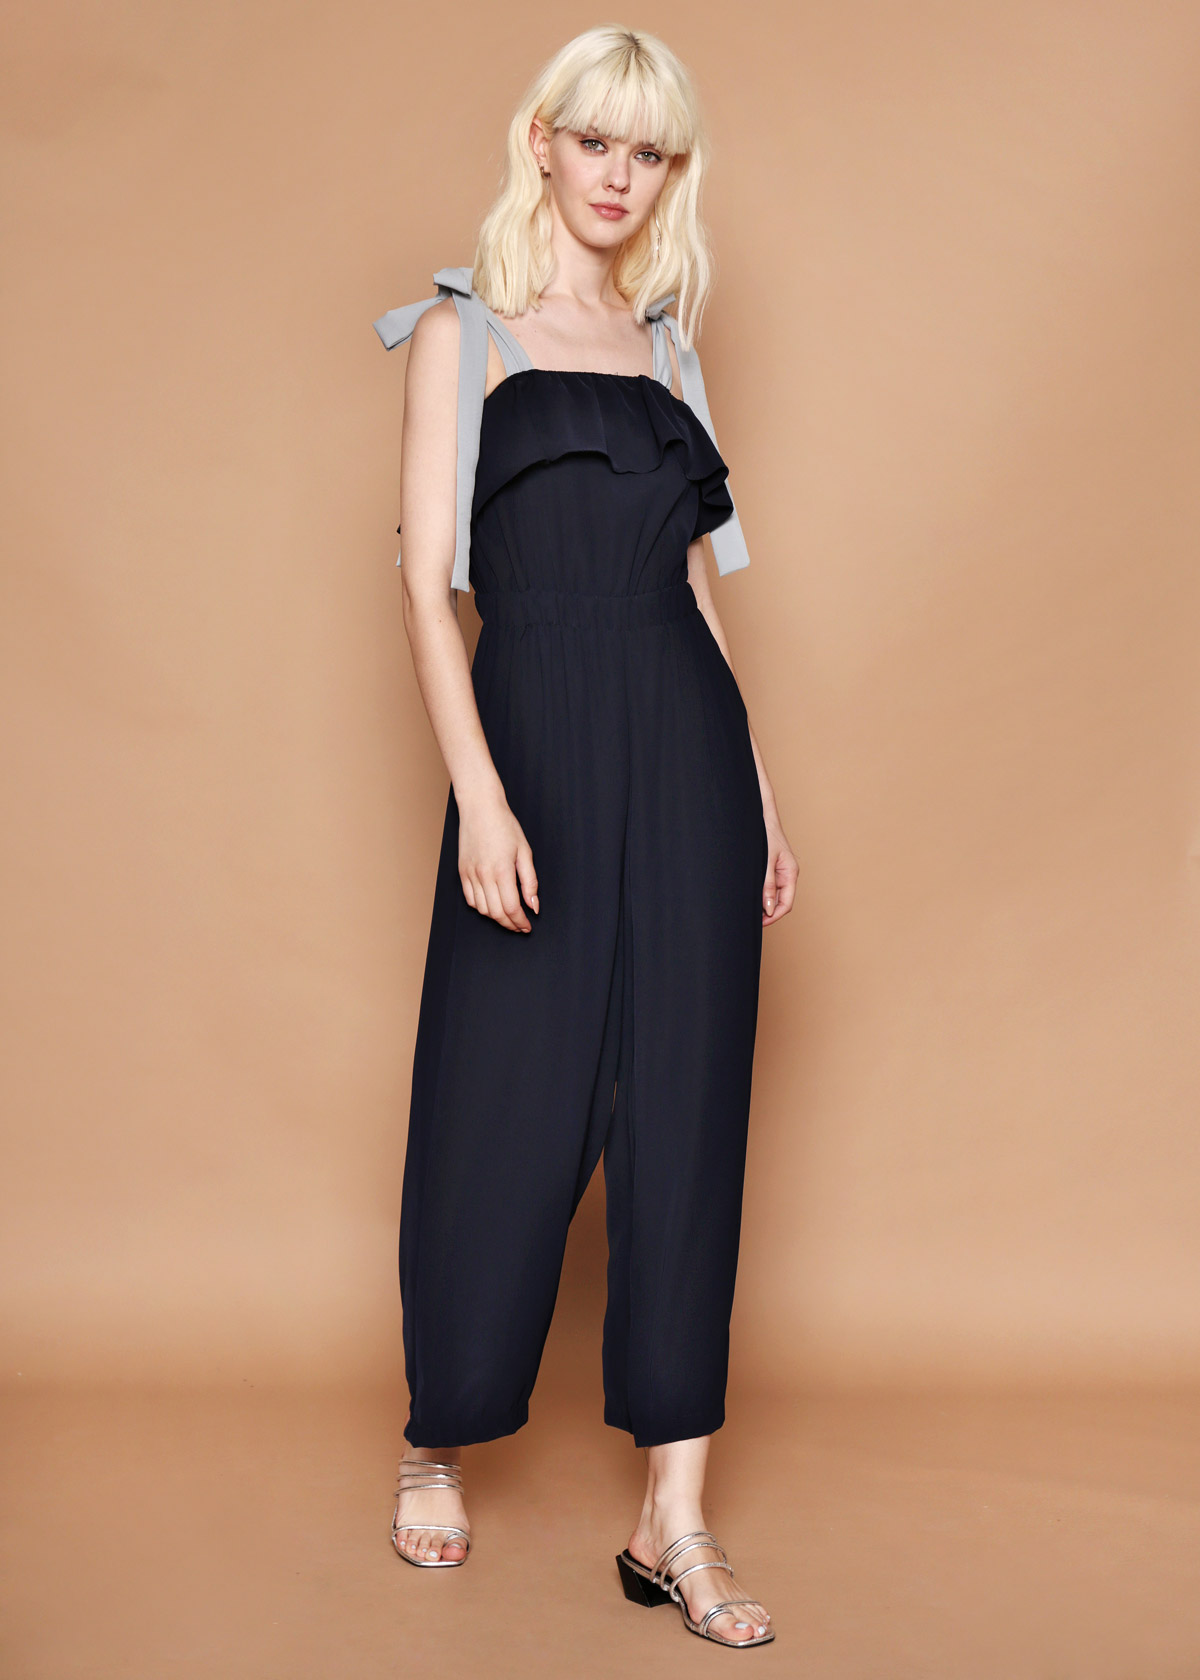 77e3d33c9c8 You may also like. Black Tube Jumpsuit